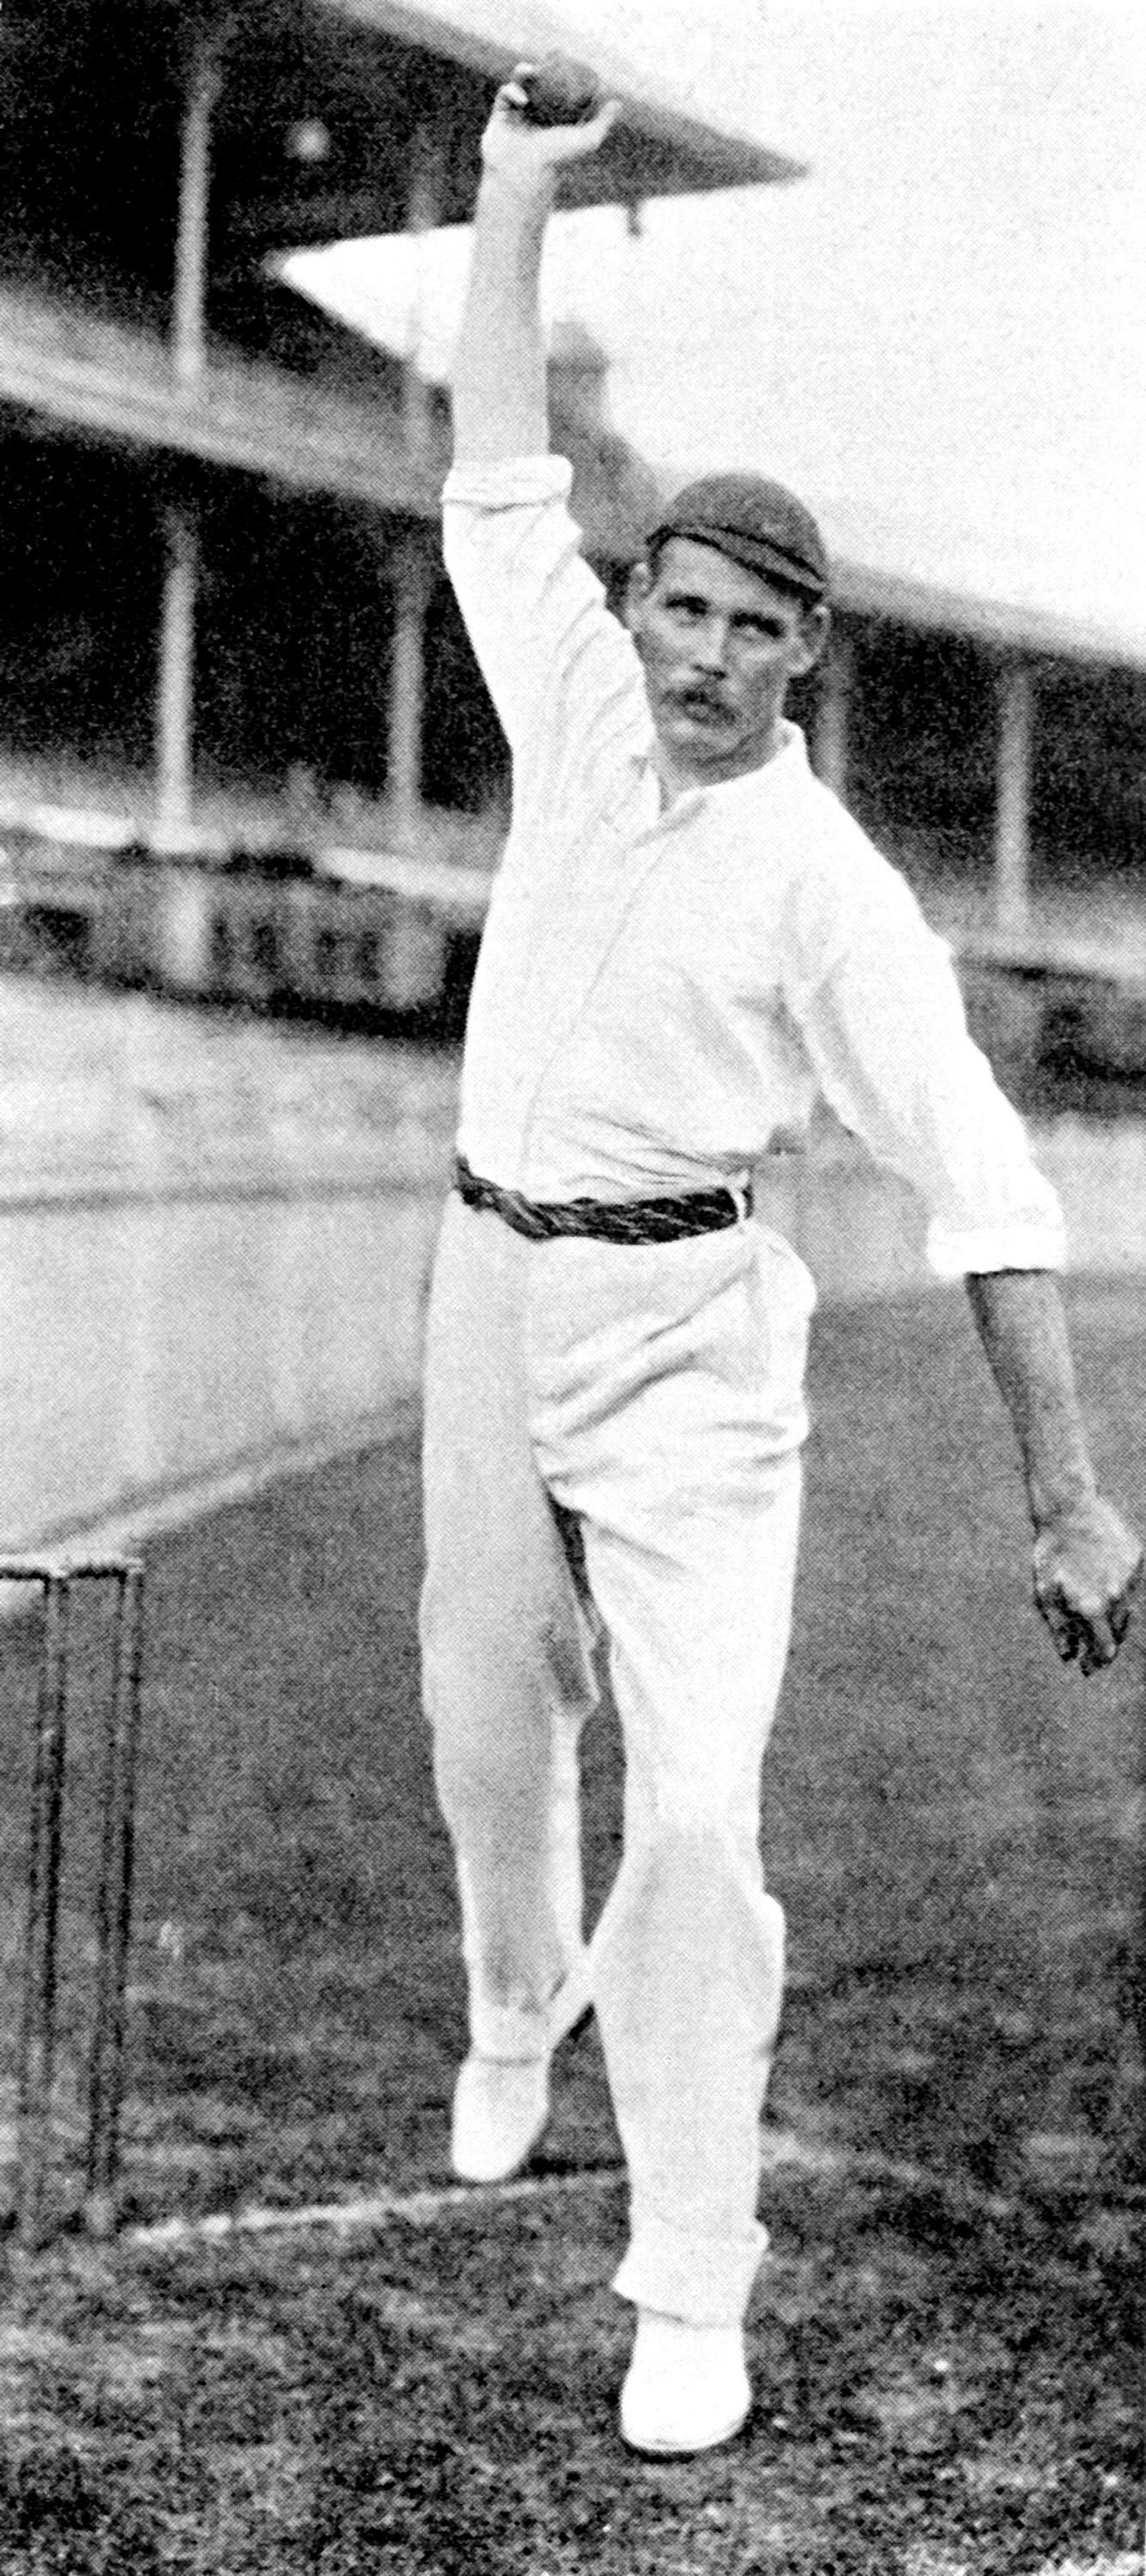 Sydney Barnes took 189 wickets in 27 Tests but his ashes couldn't be scattered at Lords